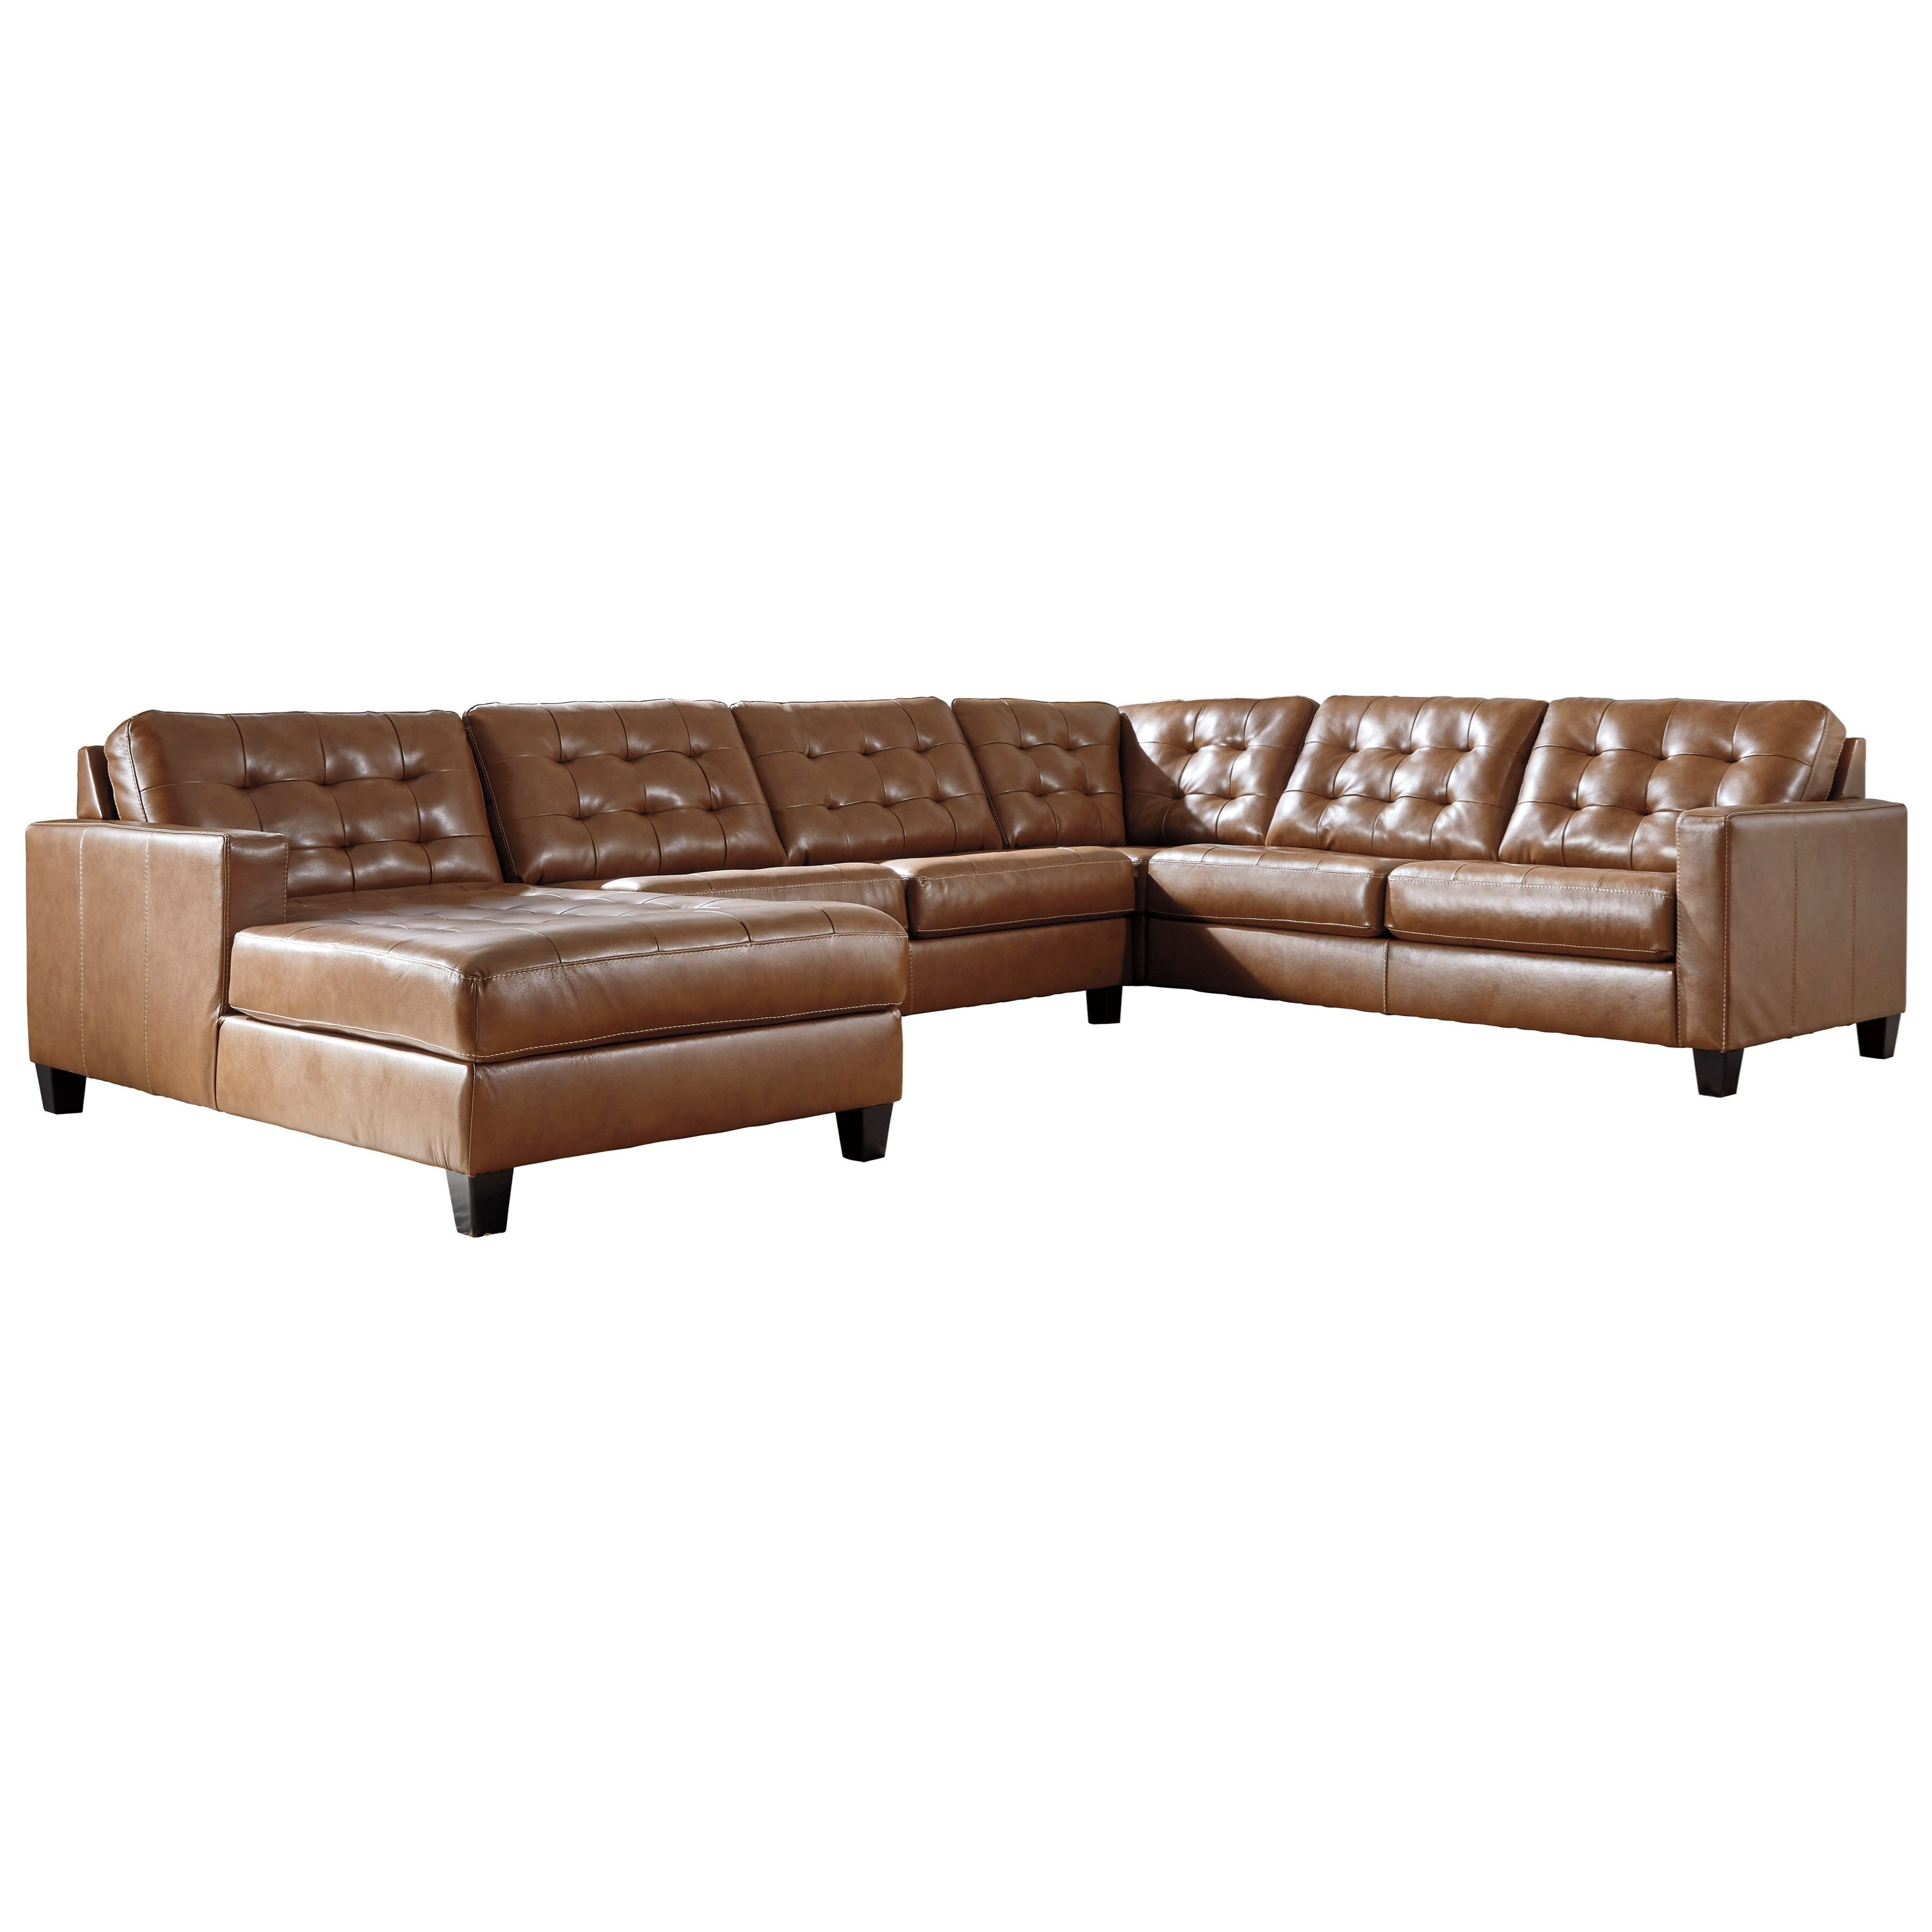 Baskove 4-Piece Sectional by Signature Design by Ashley at Zak's Warehouse Clearance Center